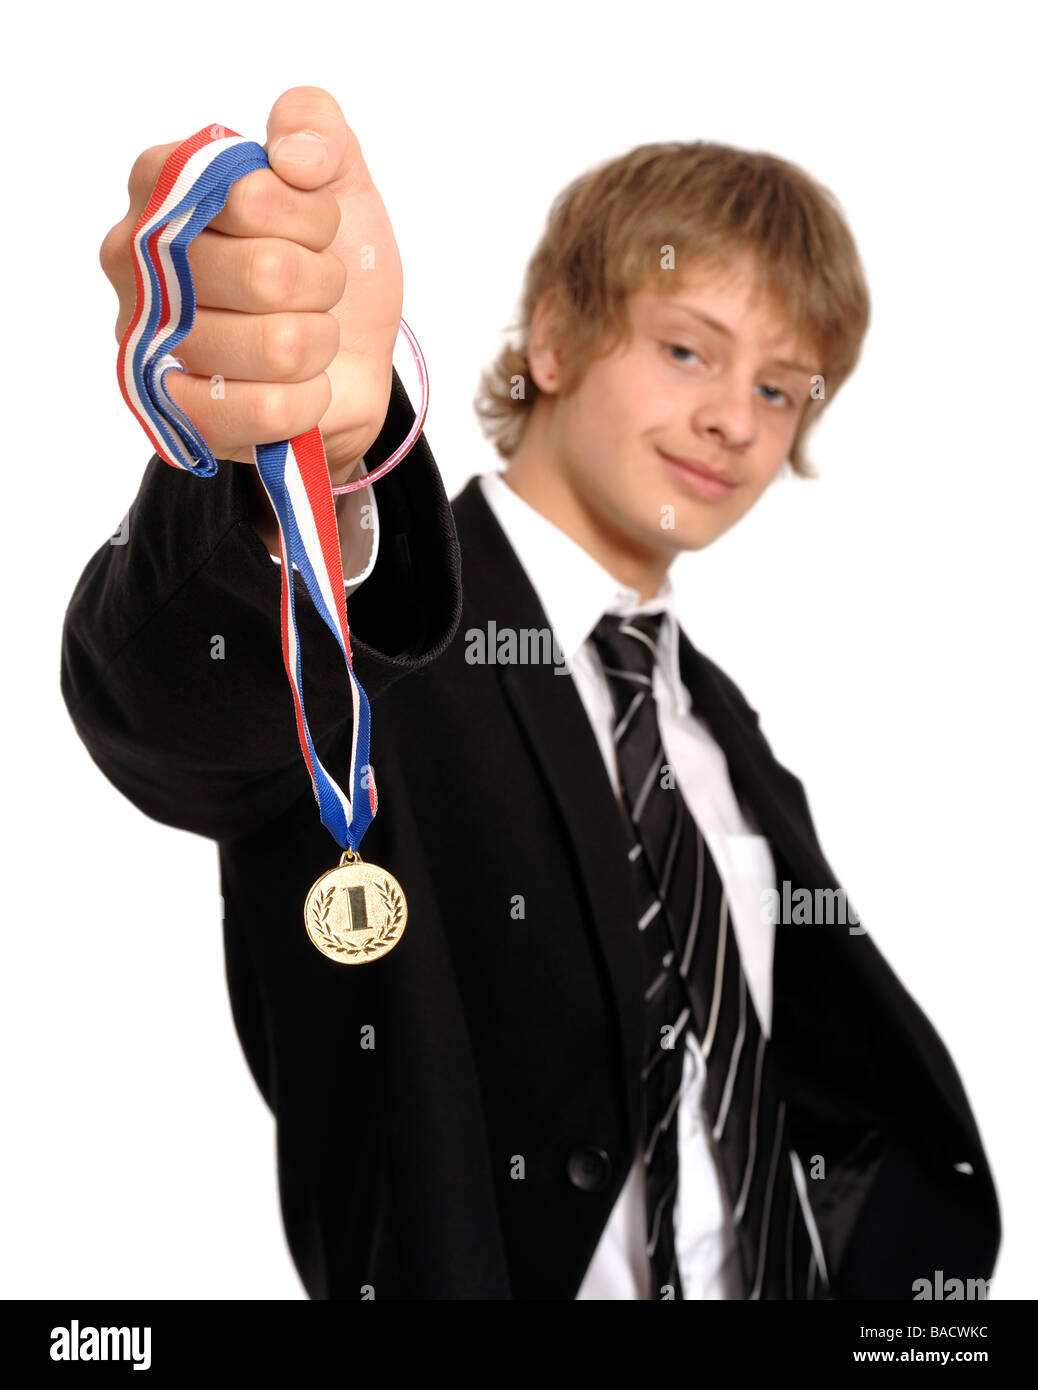 Schoolboy with a gold first medal - Stock Image